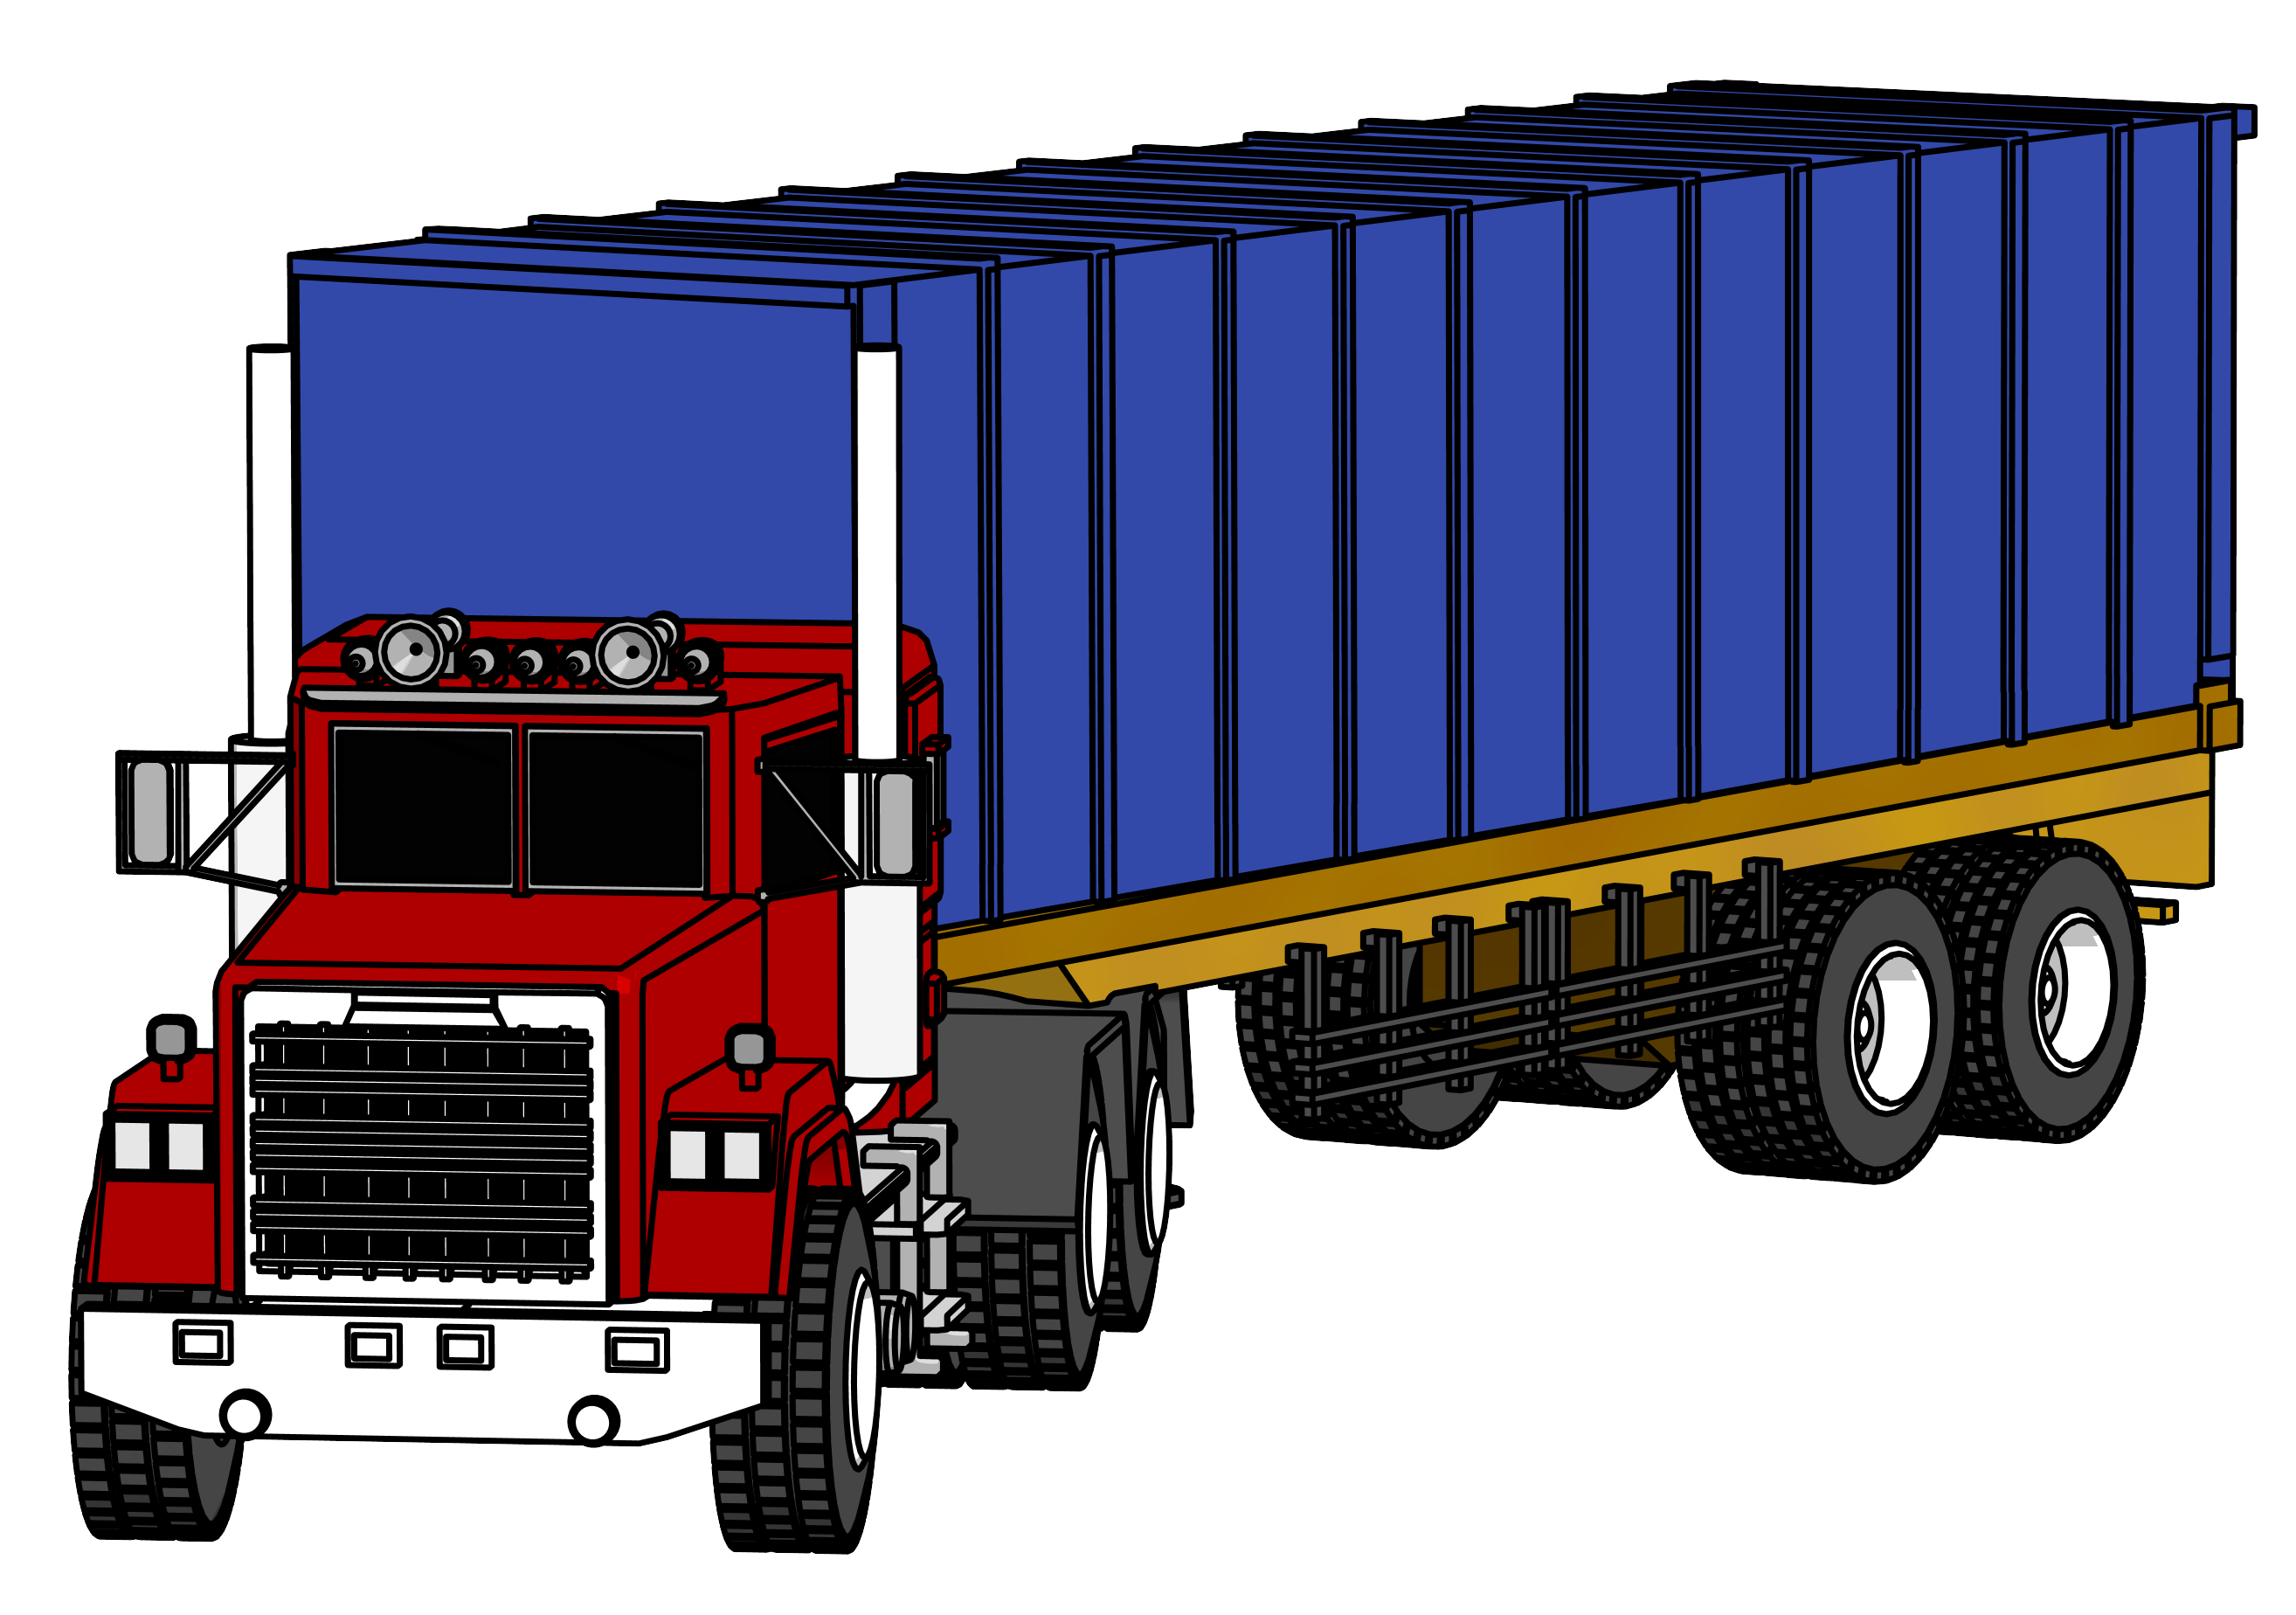 wheeler truck clipart. Trucking vector file image black and white